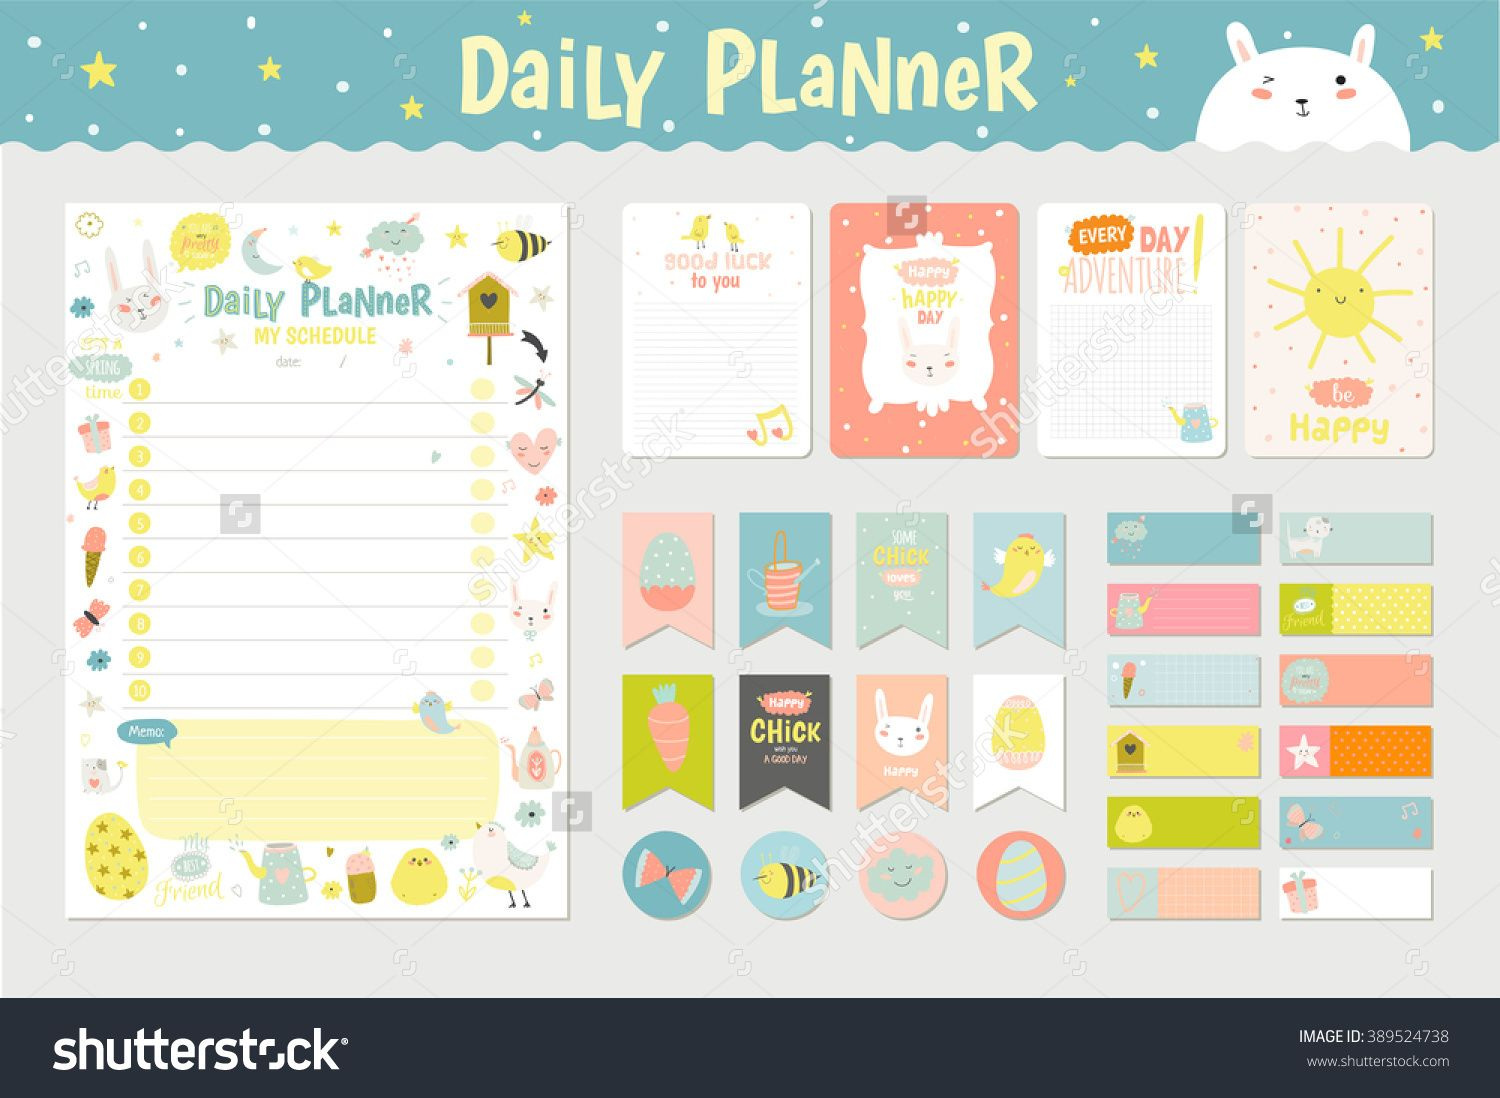 Cute Kids Calendar : Pin by julia on daily planner pinterest planners